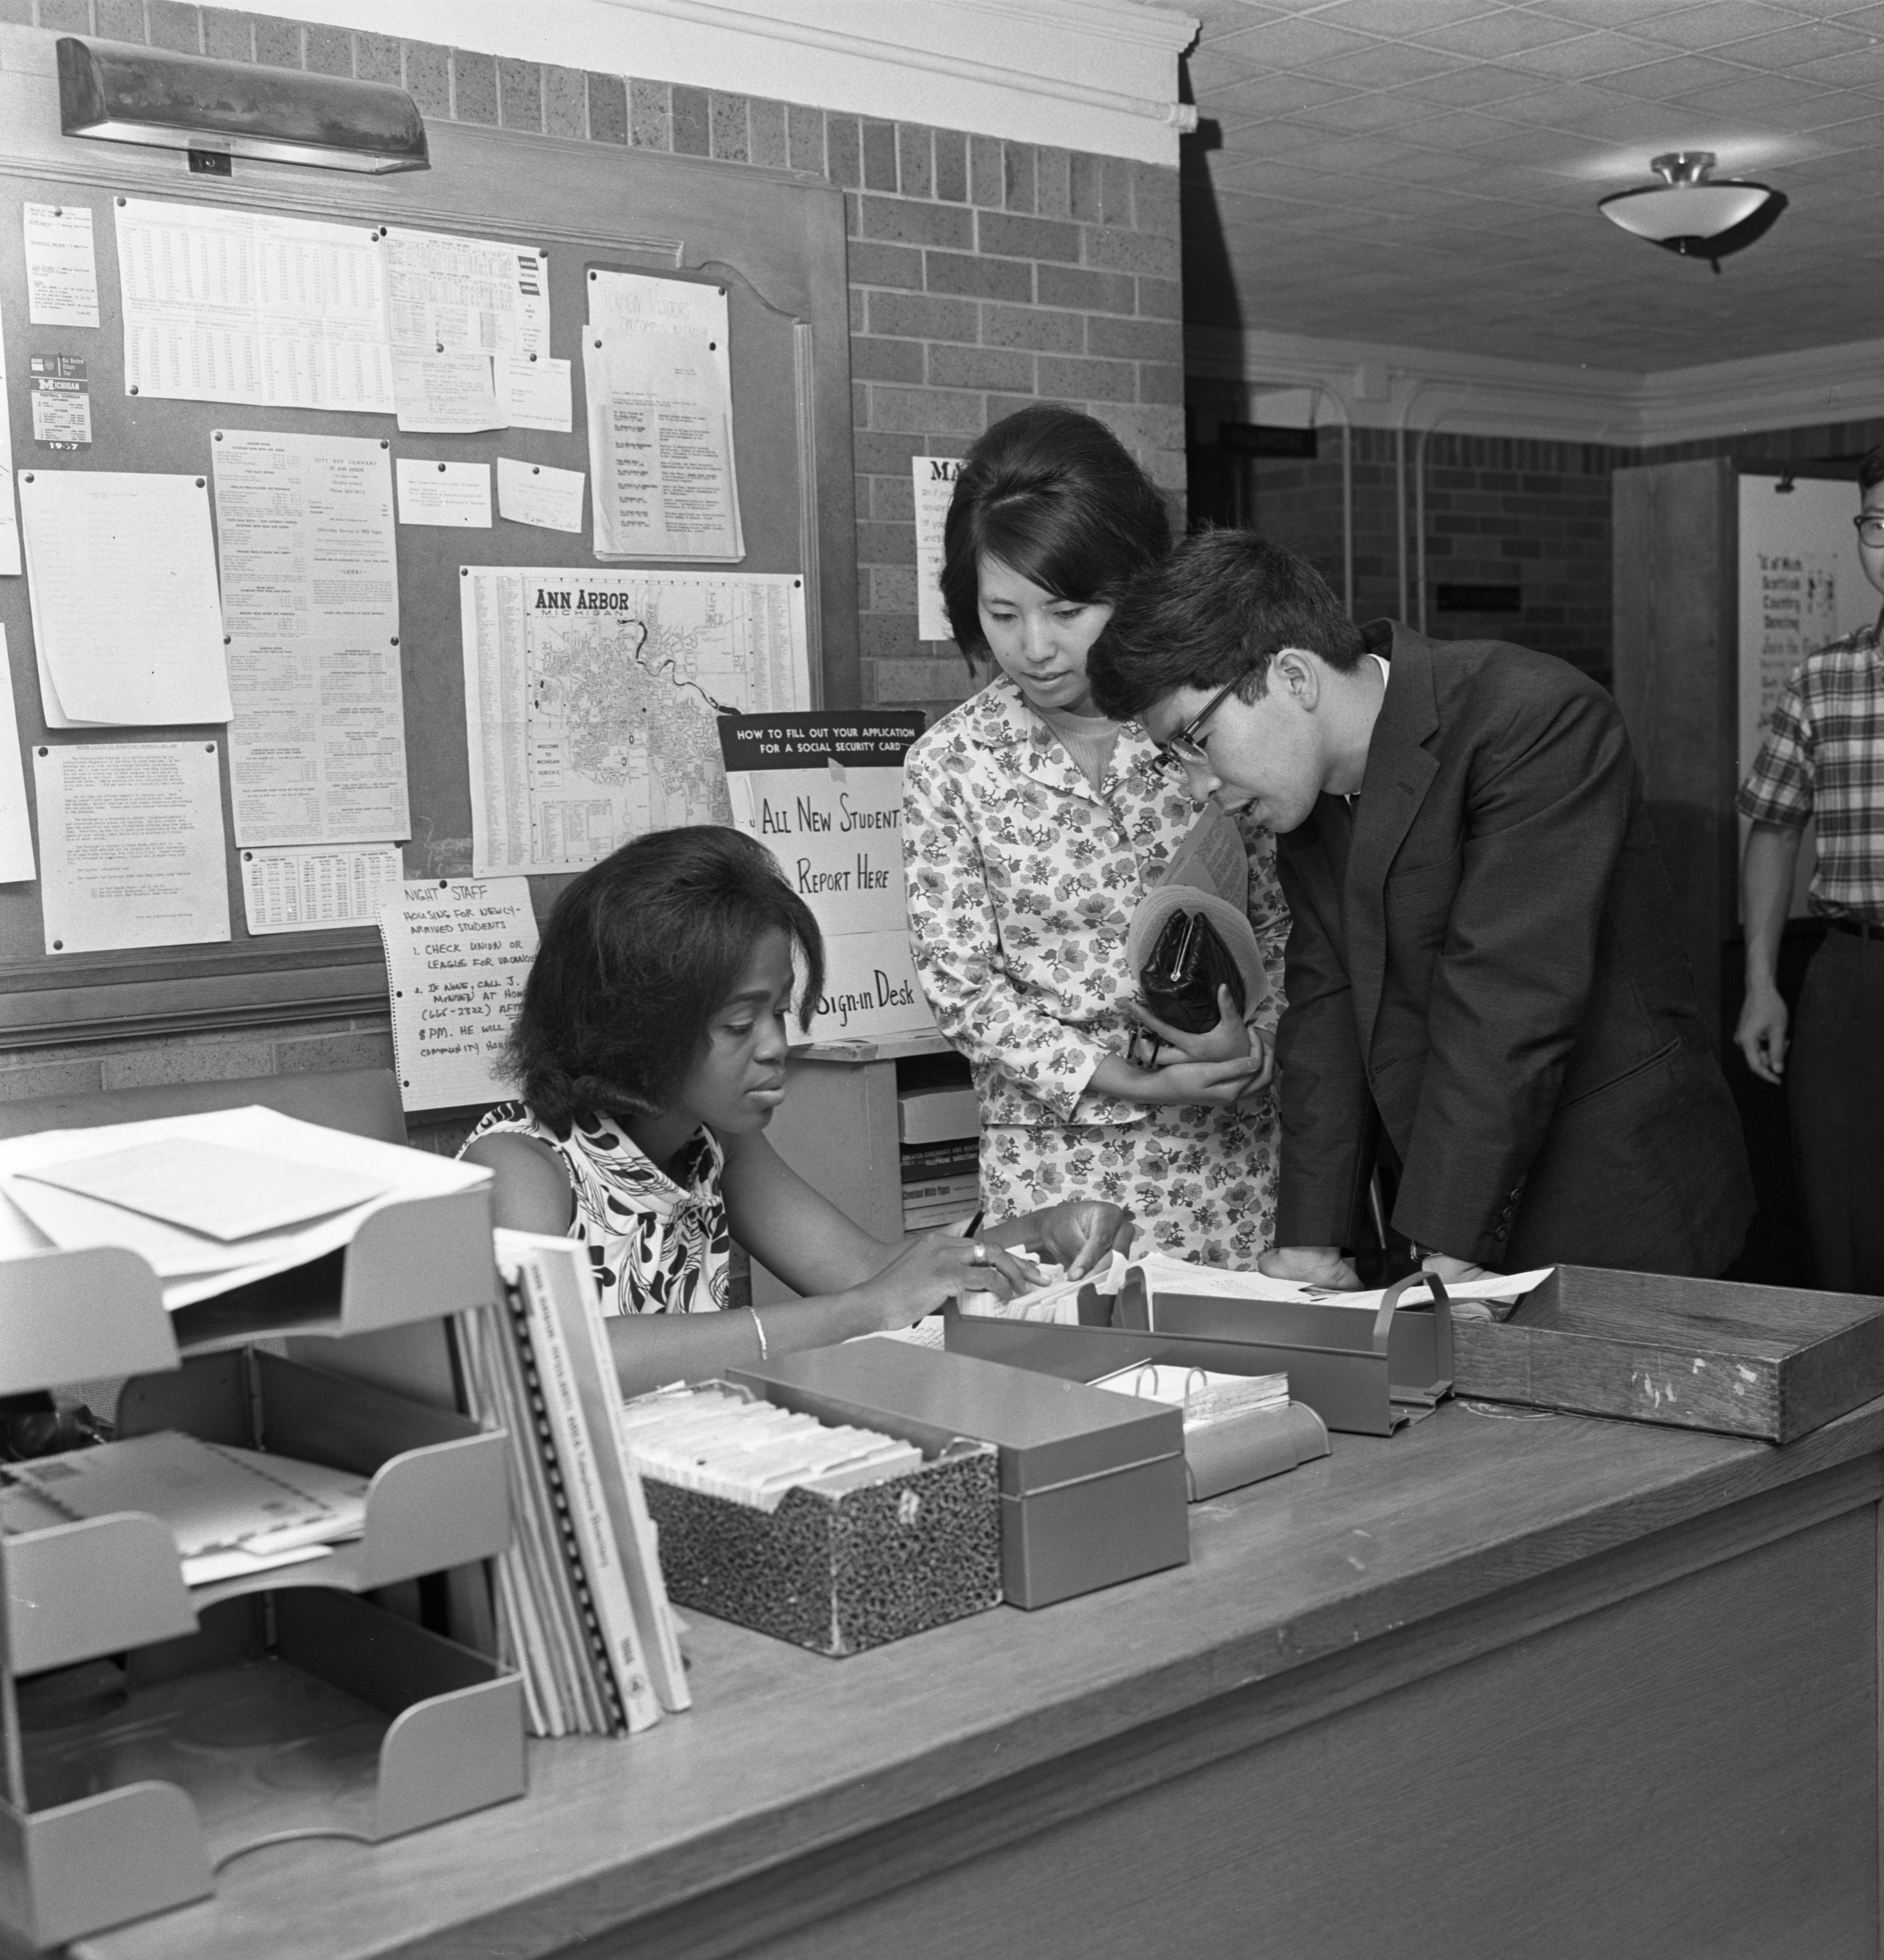 Iva Smith (left) Helps New UM Students From Japan Register For Campus Activities, August 31, 1967 image